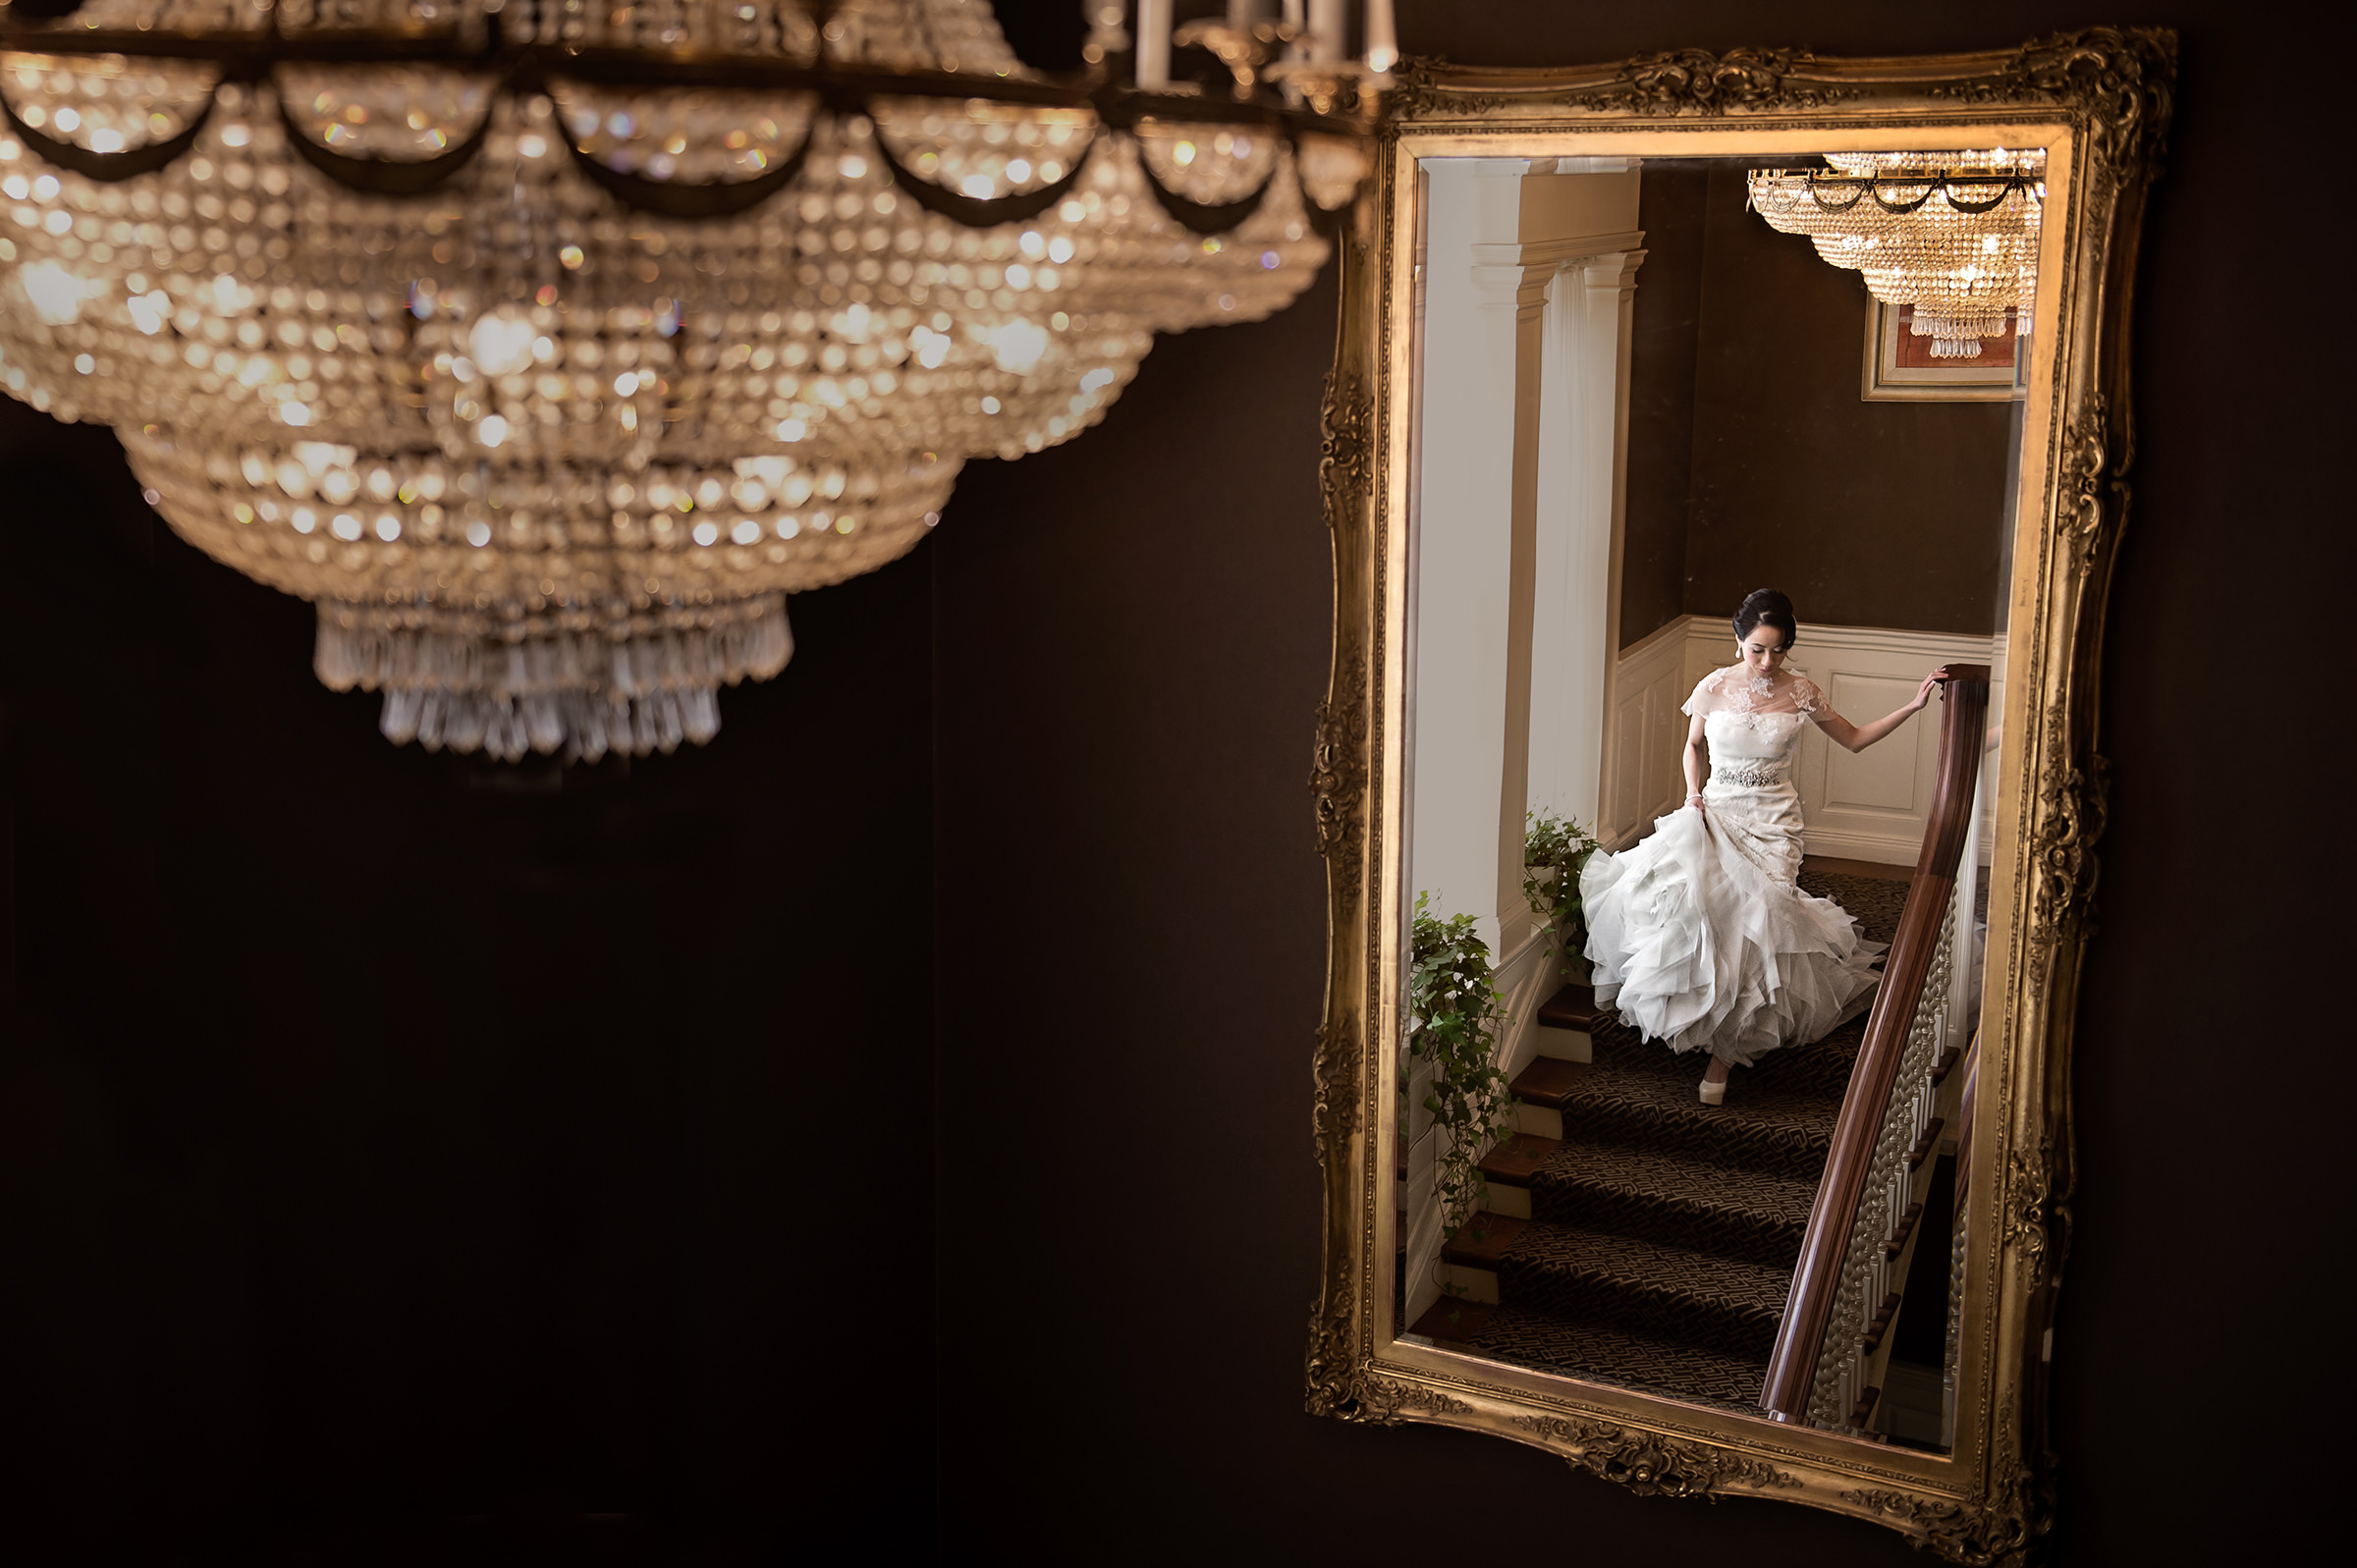 Reflected bride descending staircase - photo by David & Sherry Photography